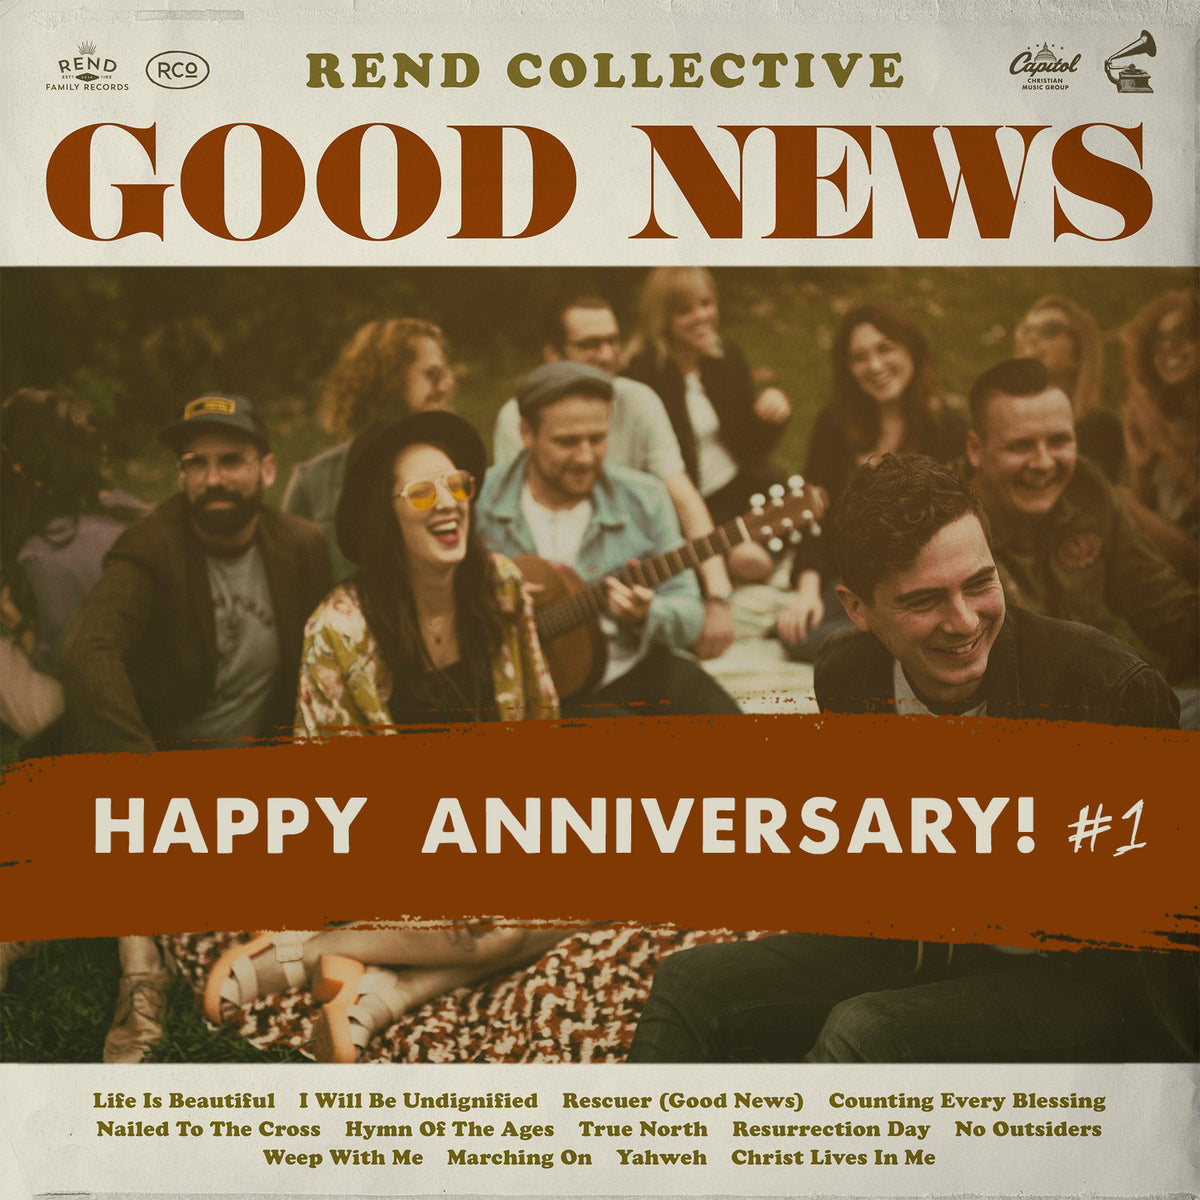 OUR GOOD NEWS ALBUM IS ONE YEARS OLD TODAY!